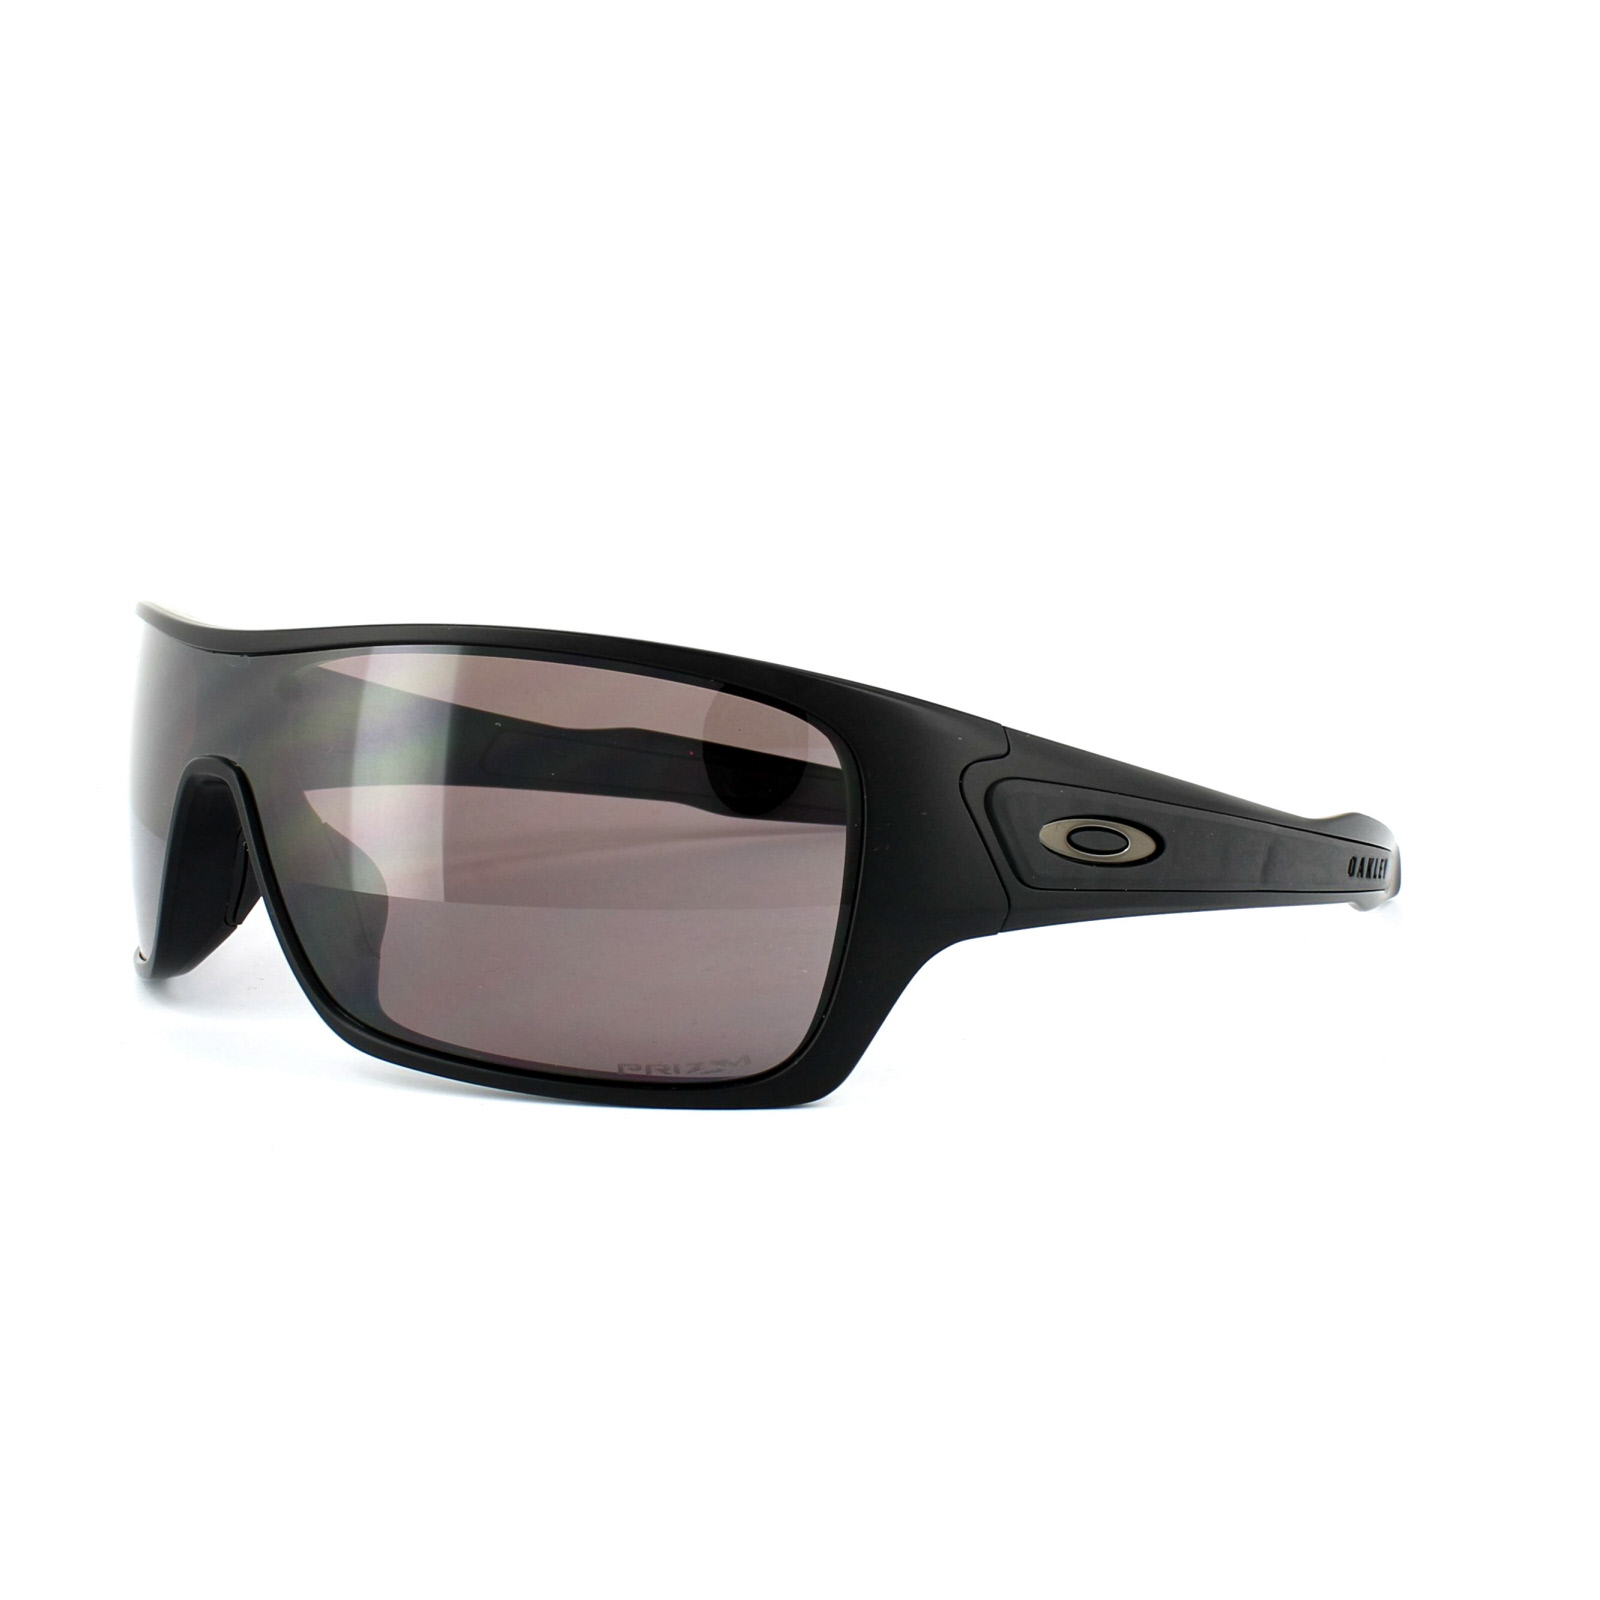 9548cd3ff7 Oakley Rotor Small Uk « Heritage Malta